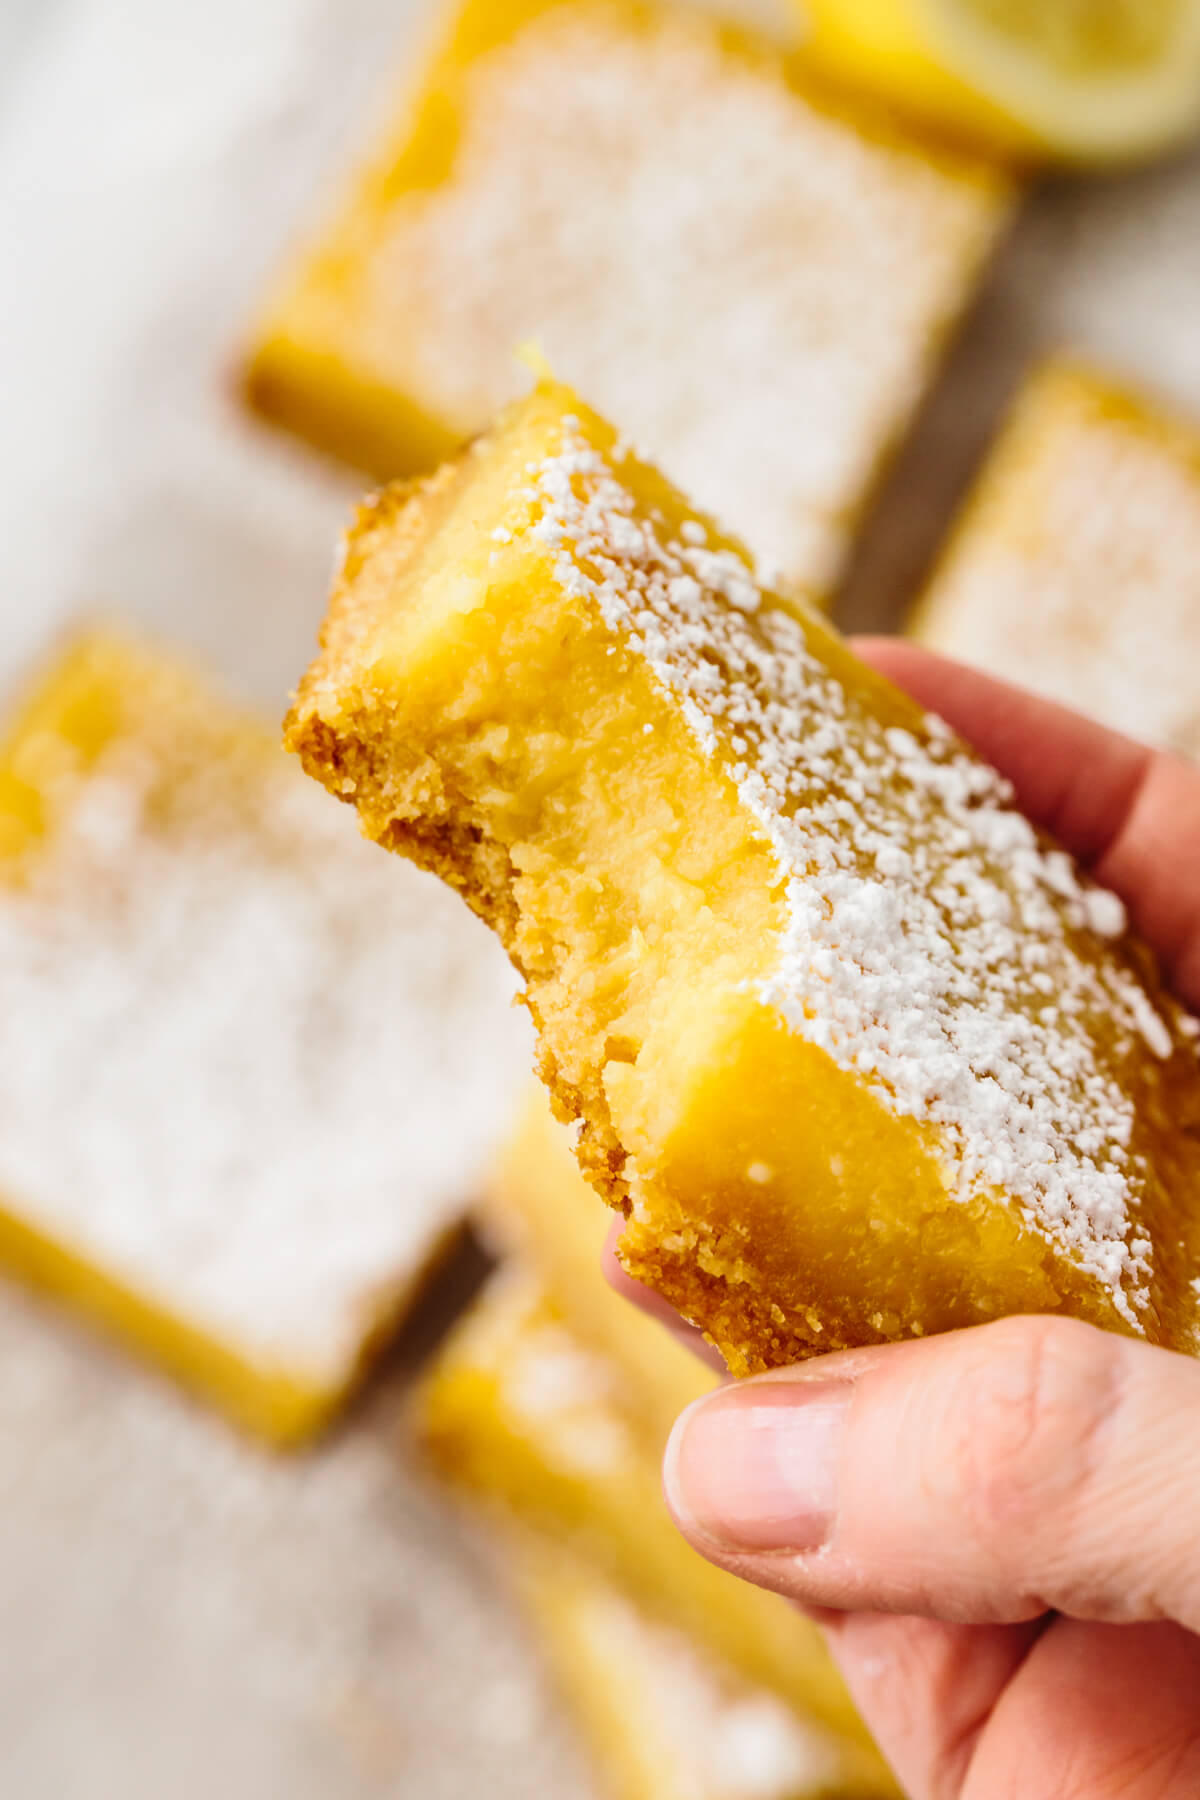 A bite out of a lemon bar.